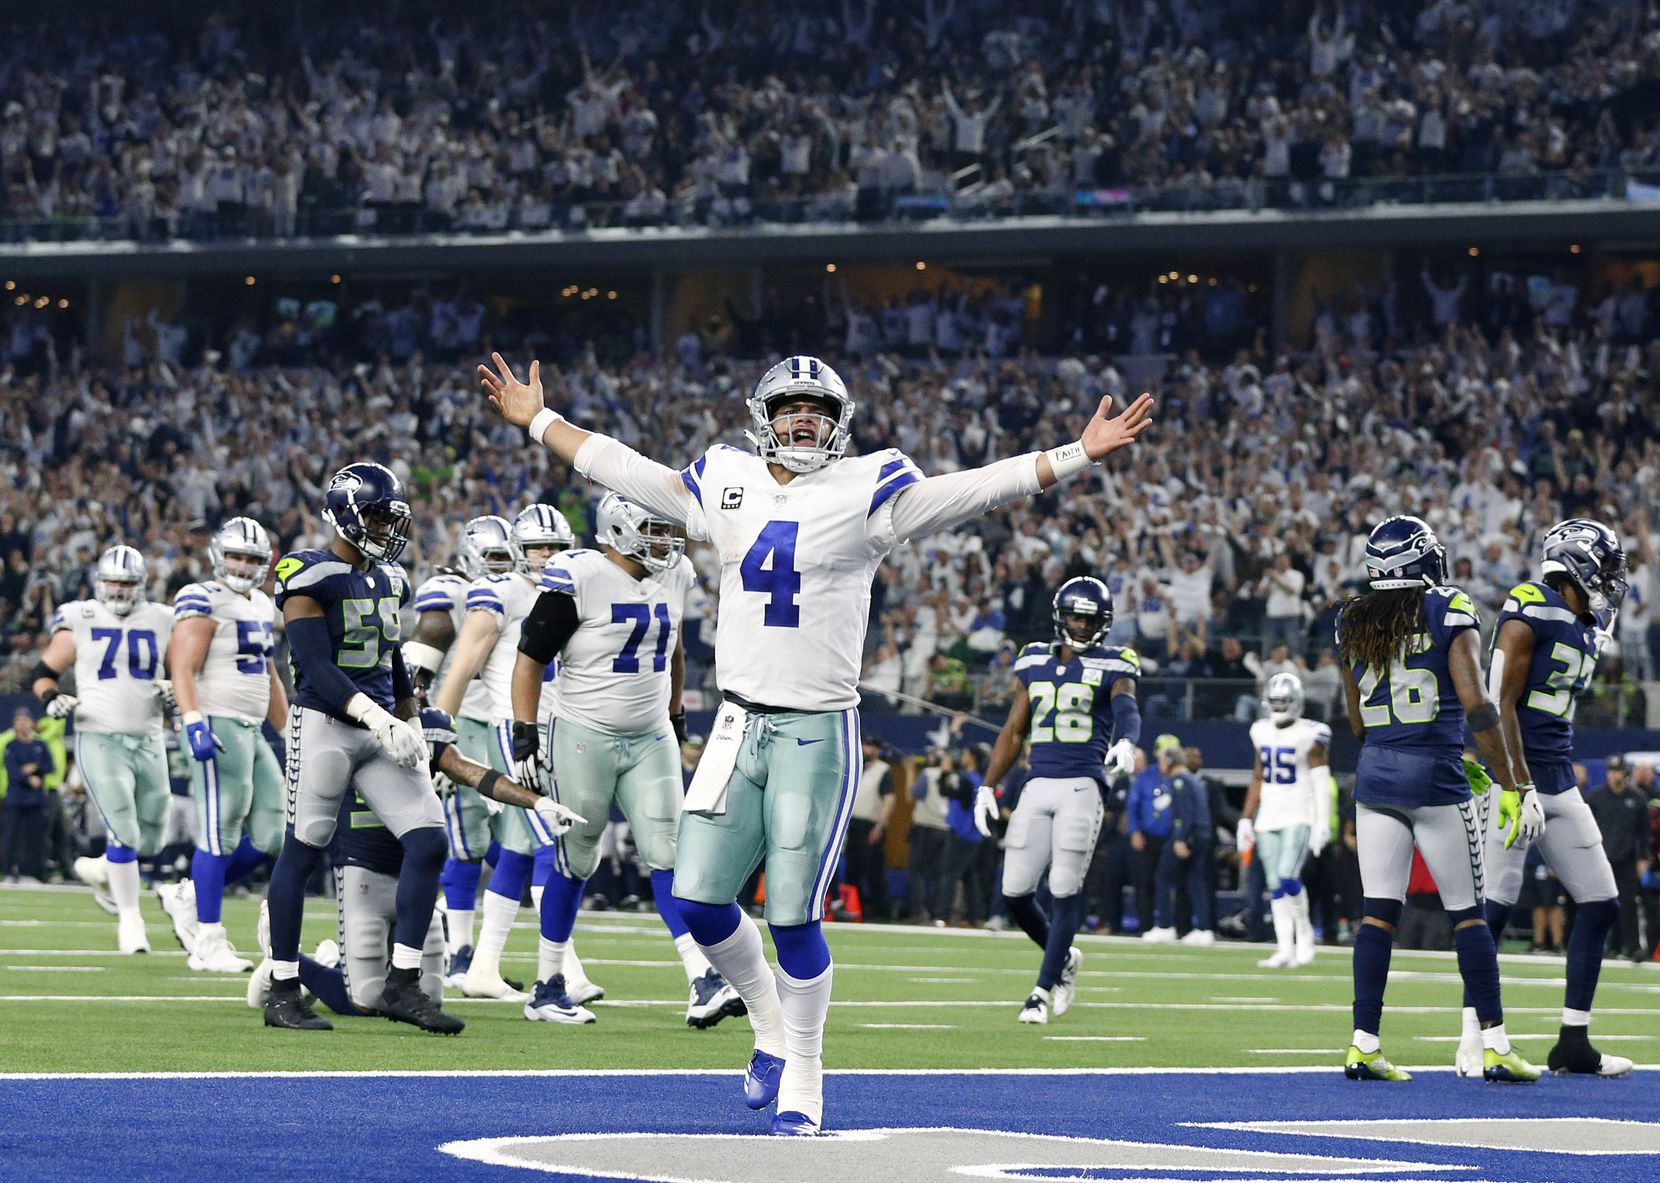 Dallas Cowboys quarterback Dak Prescott (4) celebrates after what what he thought was a fourth quarter touchdown in their NFC Wild Card win over the Seattle Seahawks at AT&T Stadium in Arlington, Texas, Saturday, January 5, 2019. Dak came up short but ran in the touchdown a couple plays later. The Cowboys won, 24-22. (Tom Fox/The Dallas Morning News)